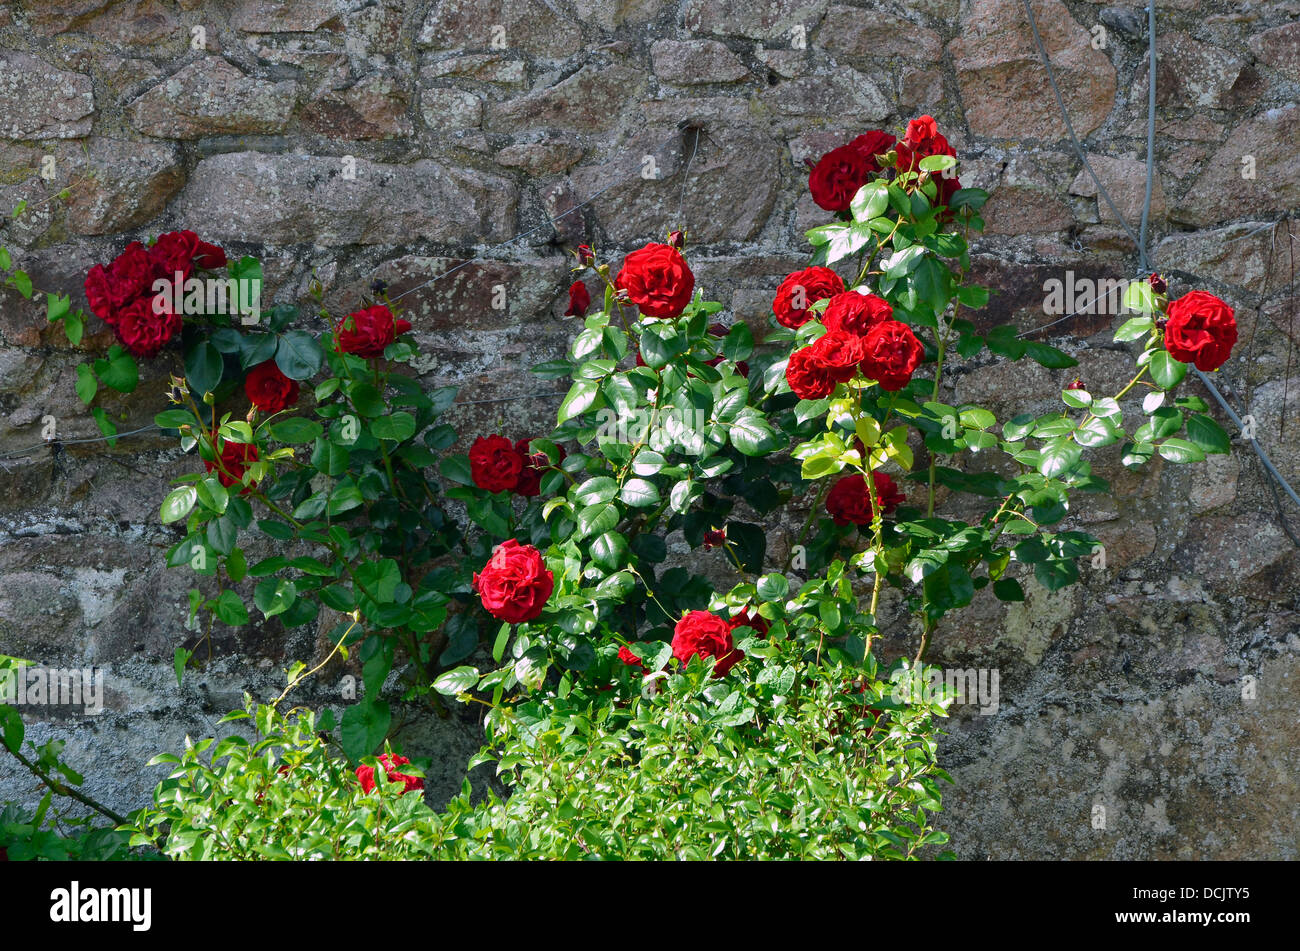 Red roses against an old red sandstone wall in the south Cumbria area of the Lake District. - Stock Image